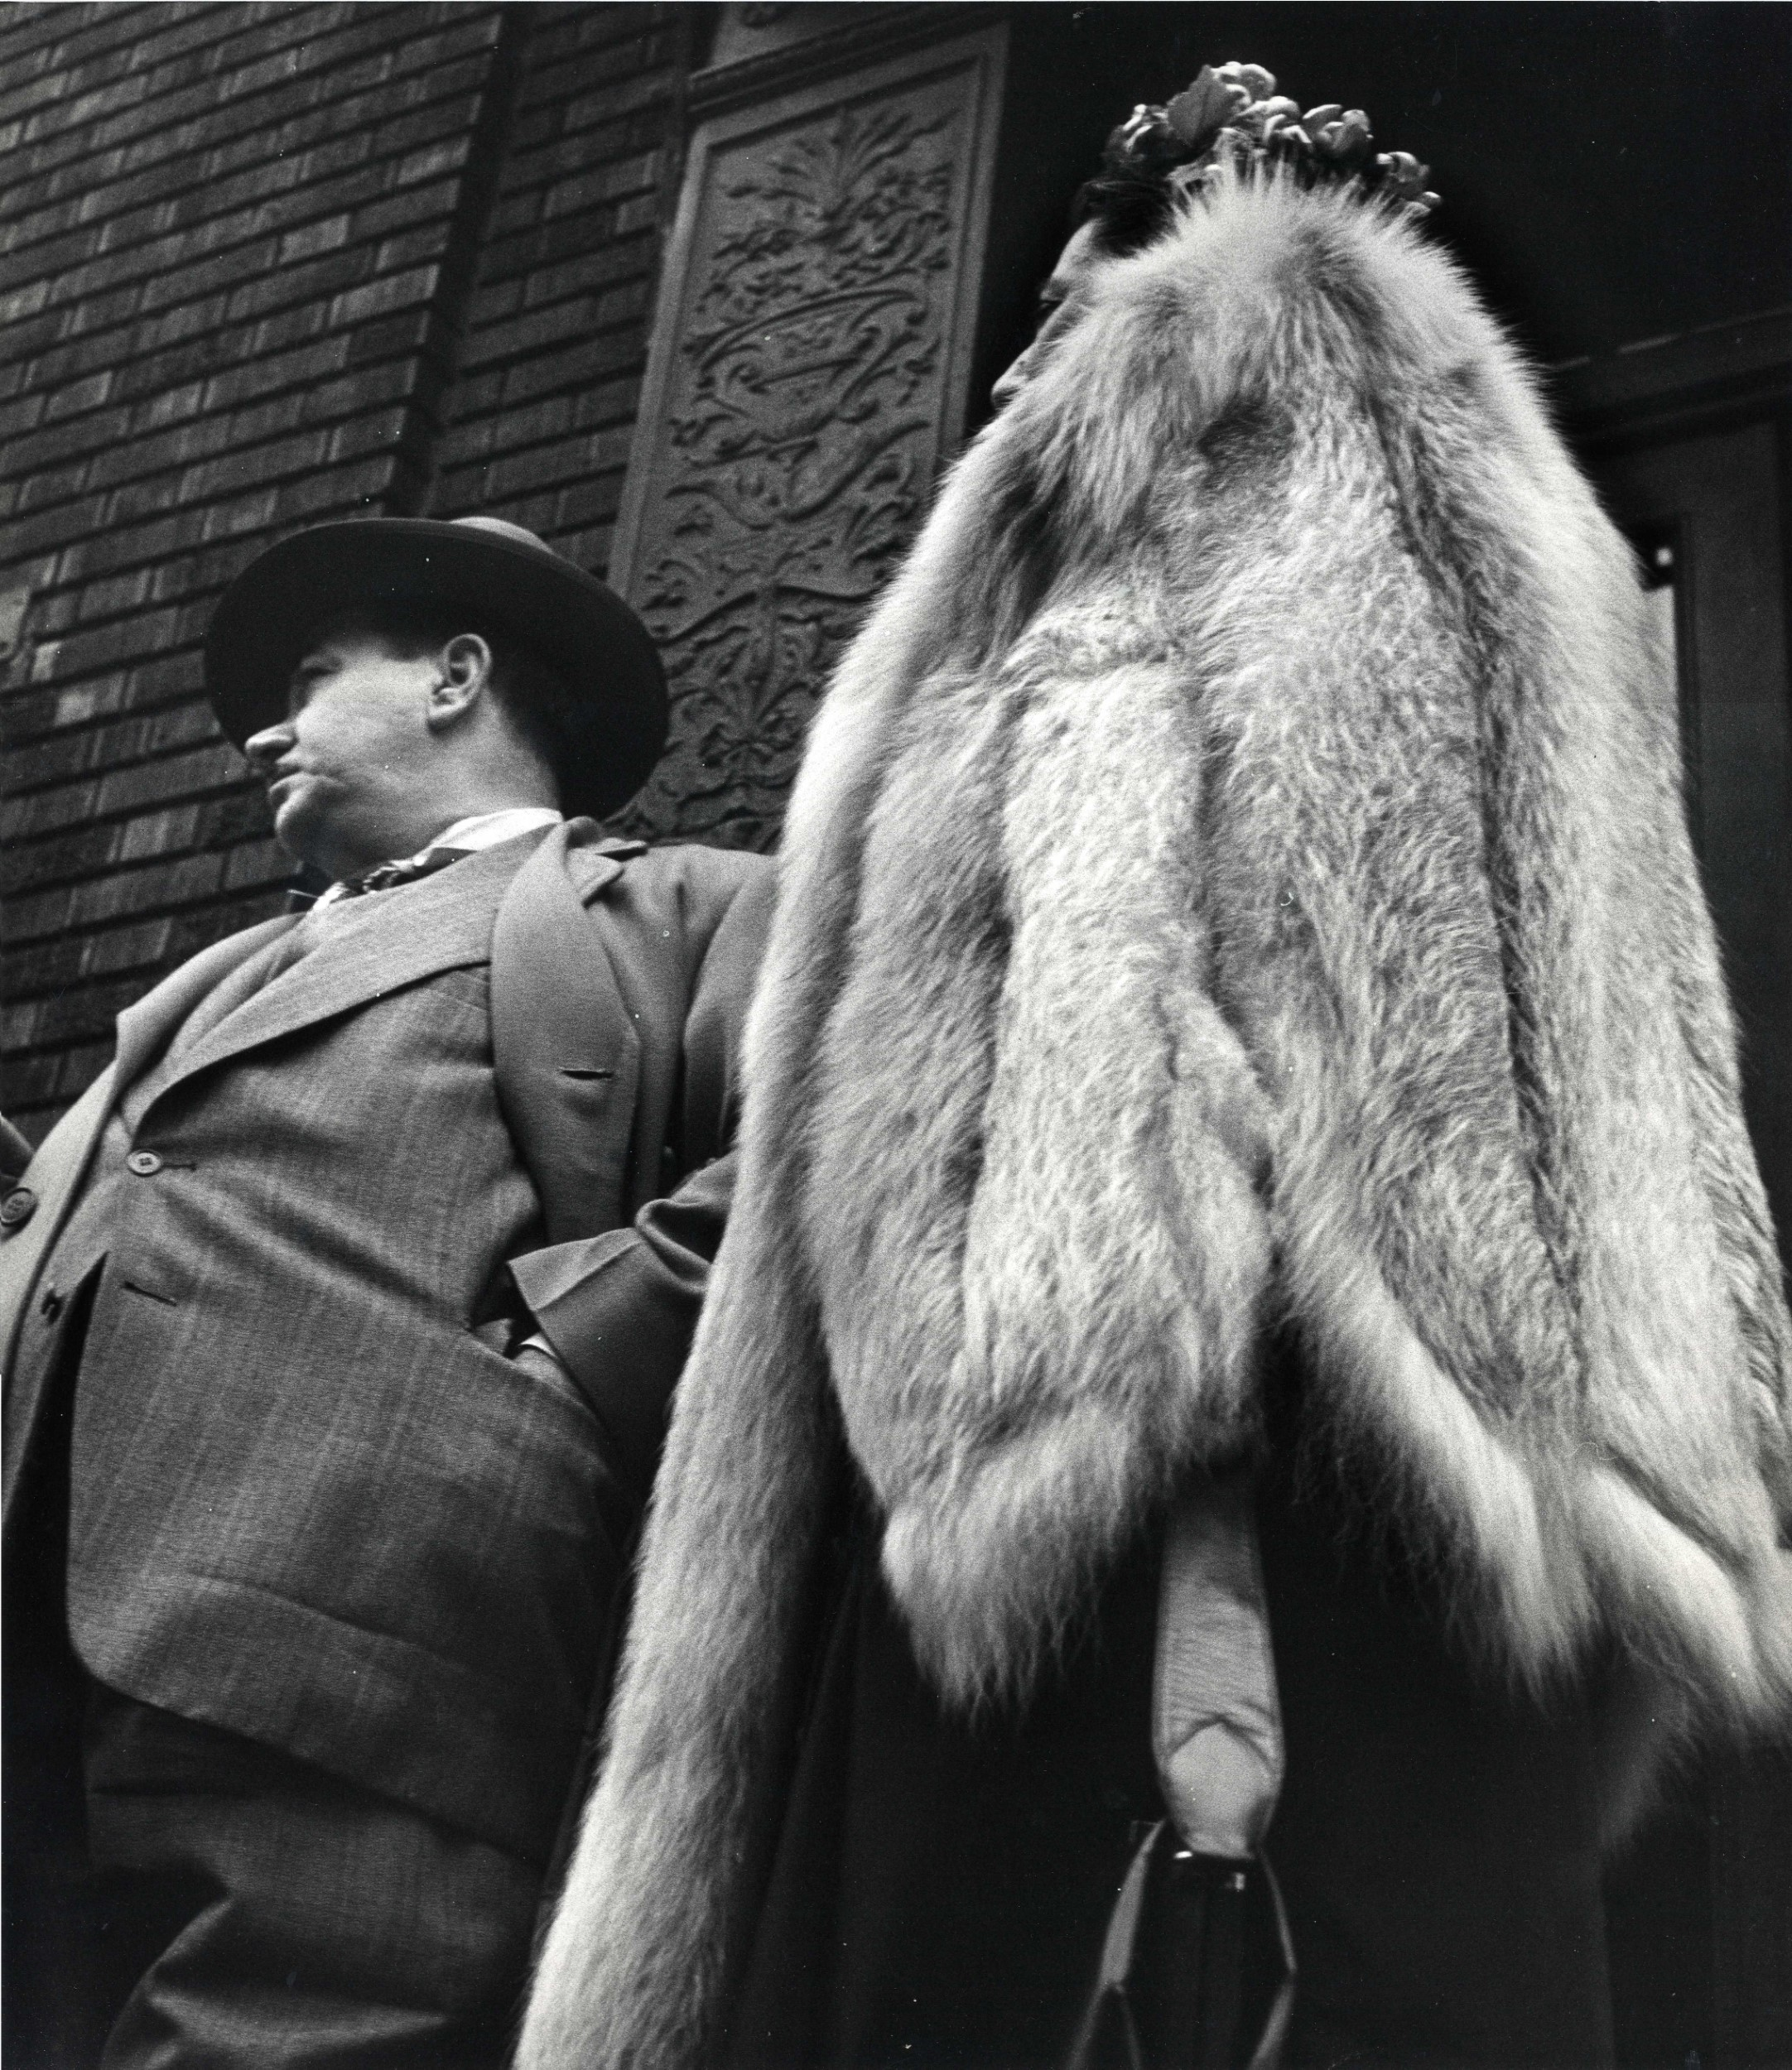 Man in suit, woman in fur coat, 1954